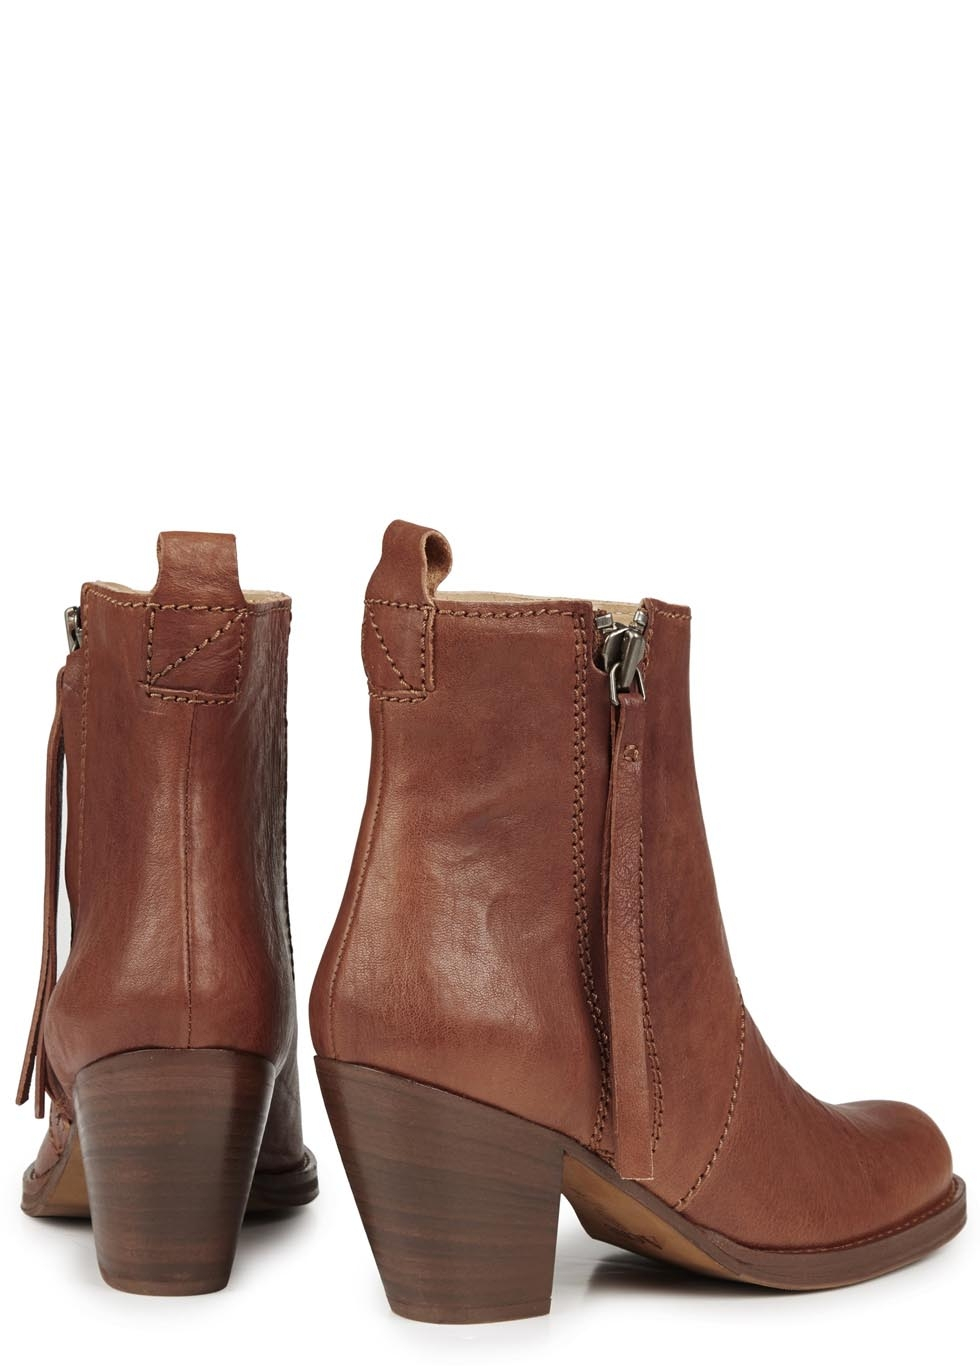 Acne studios Pistol Brown Leather Ankle Boots in Brown | Lyst